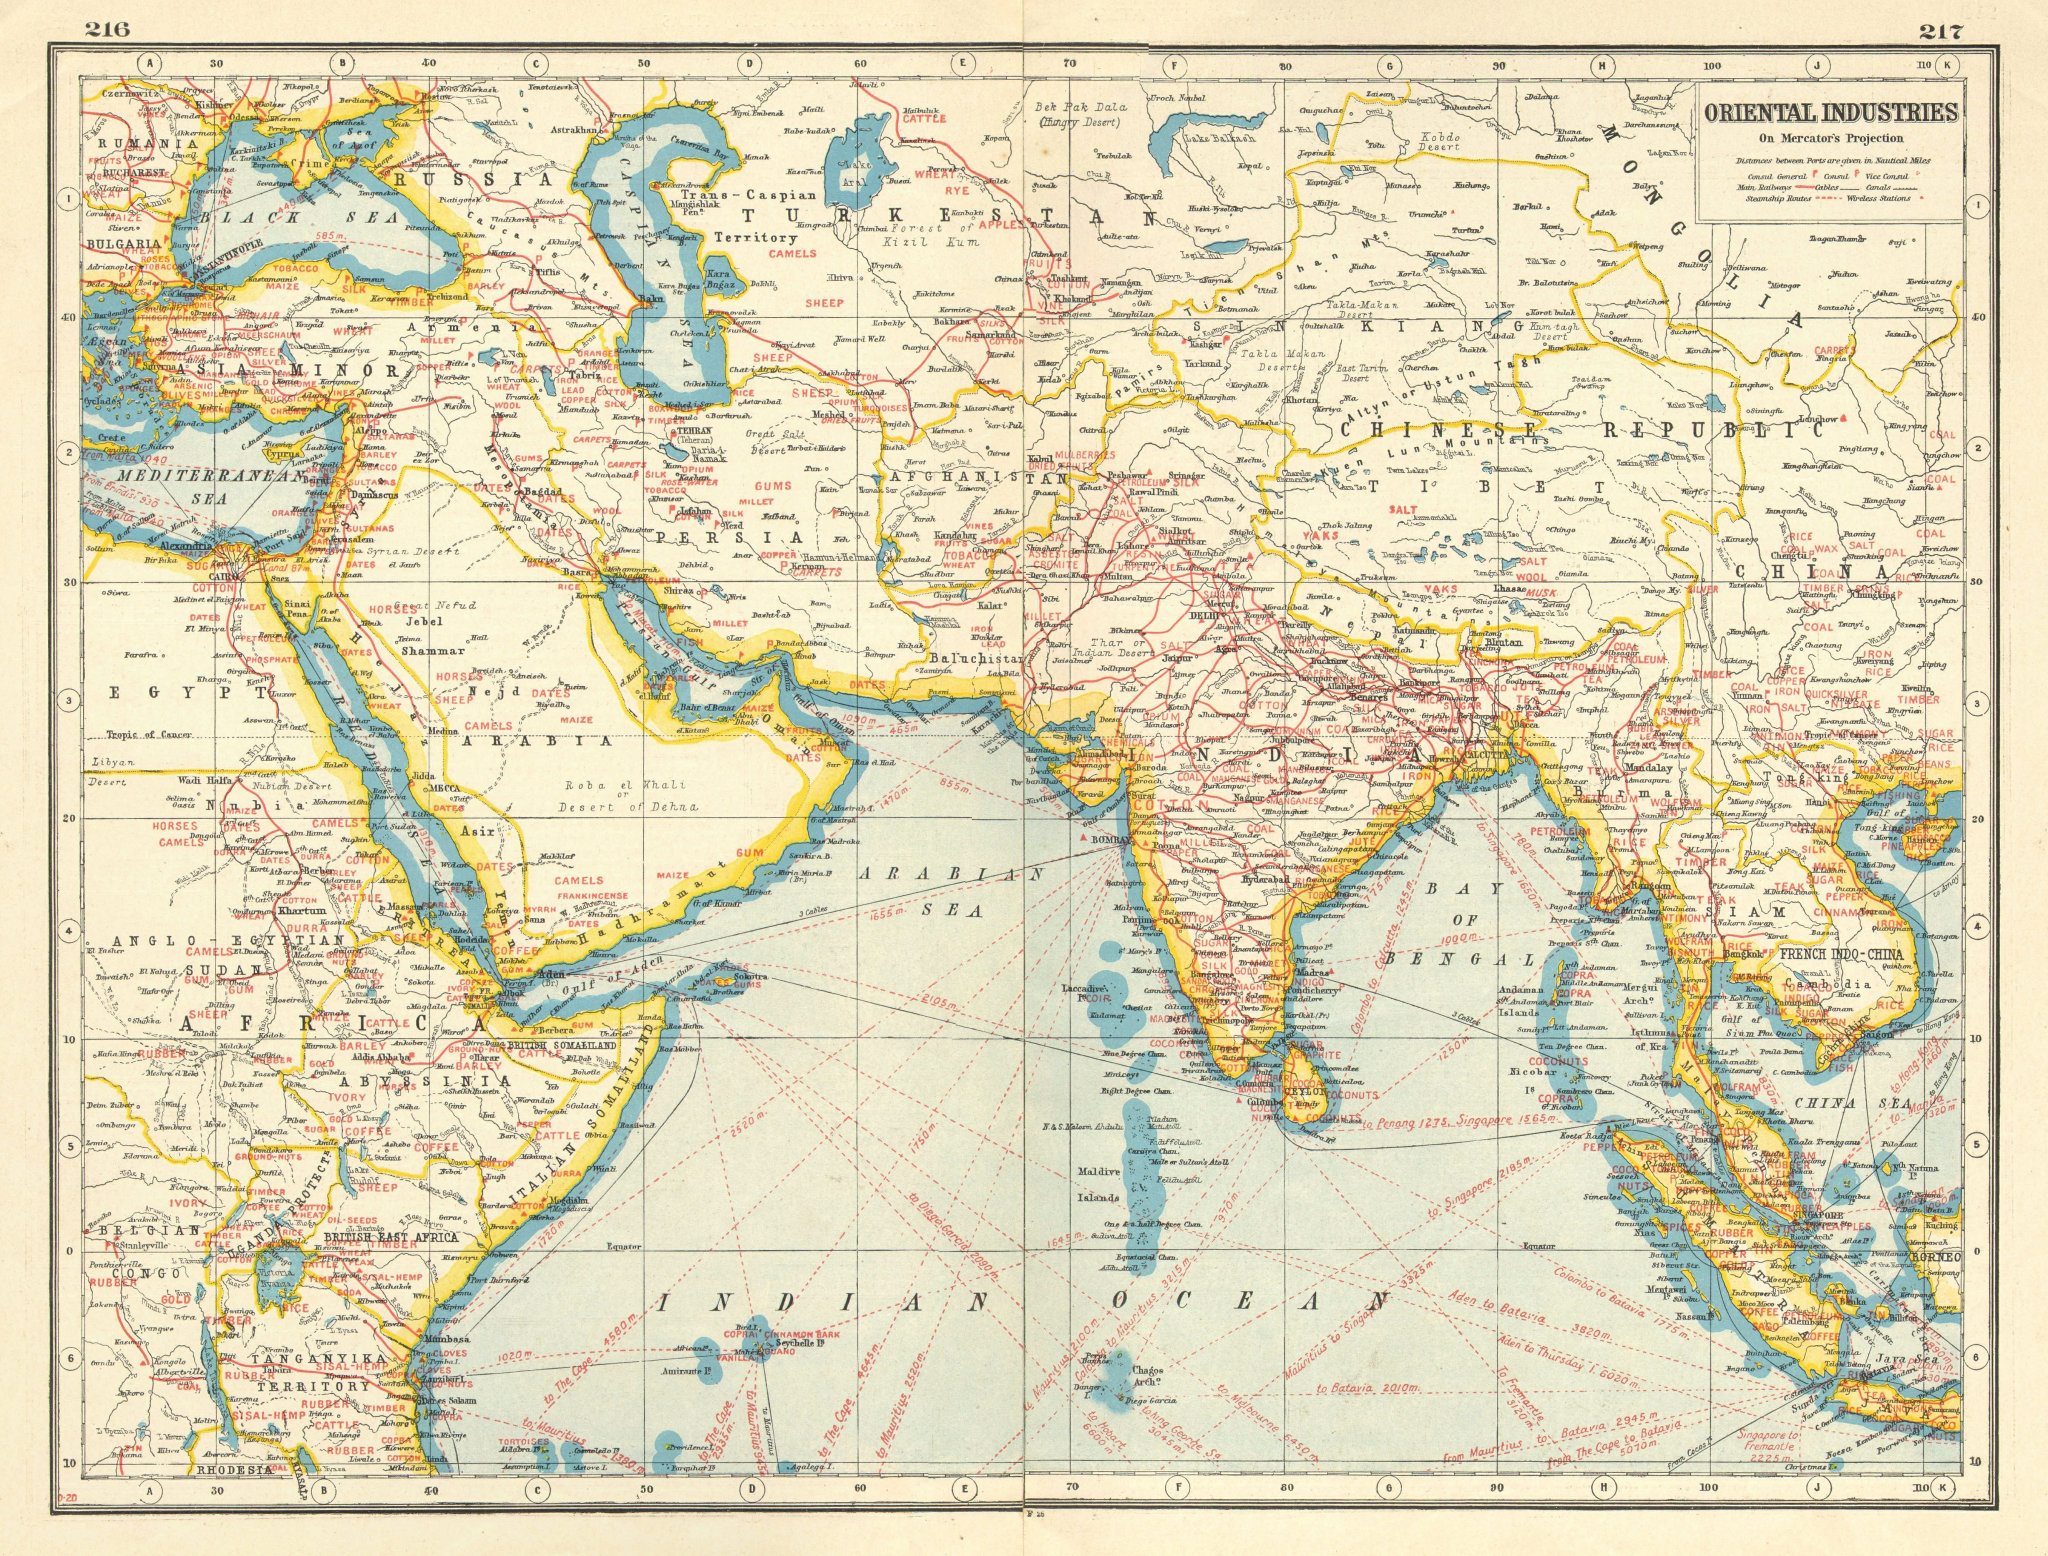 Associate Product ASIA MIDDLE EAST AFRICA COMMERCIAL.Shows agricultural/mineral products 1920 map